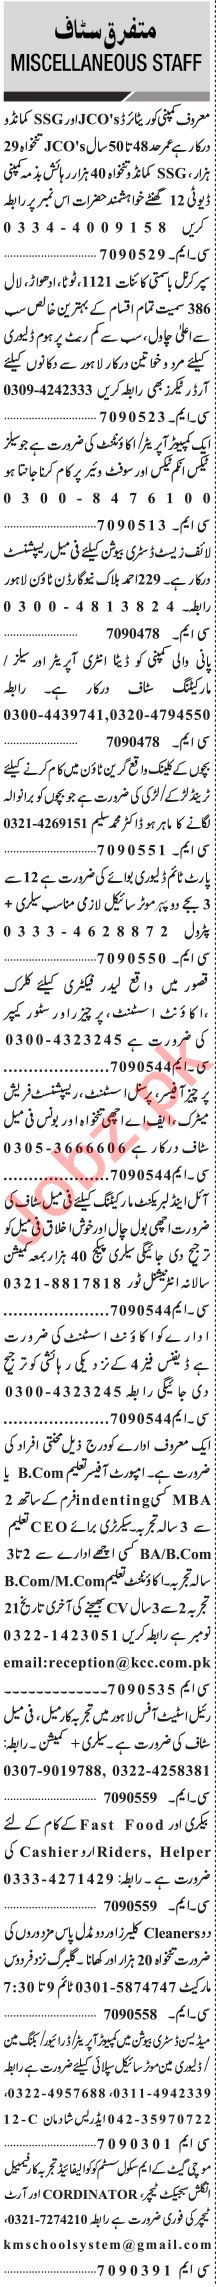 Jang Sunday Classified Ads 15 Nov 2020 for Admin Staff